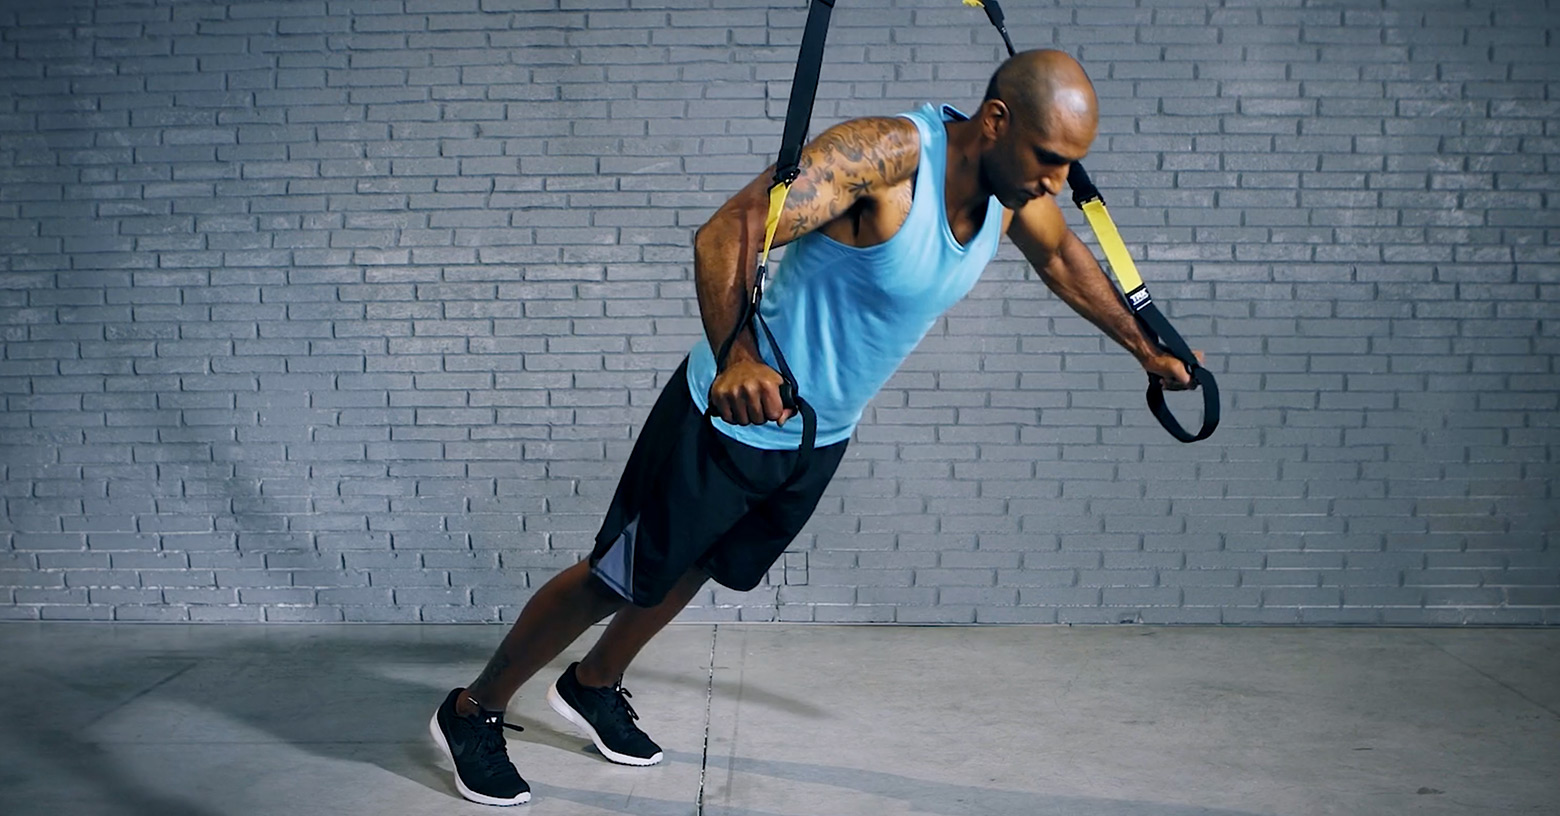 TRX and Bodyweight Workout /Eigengewicht und TRX Workout